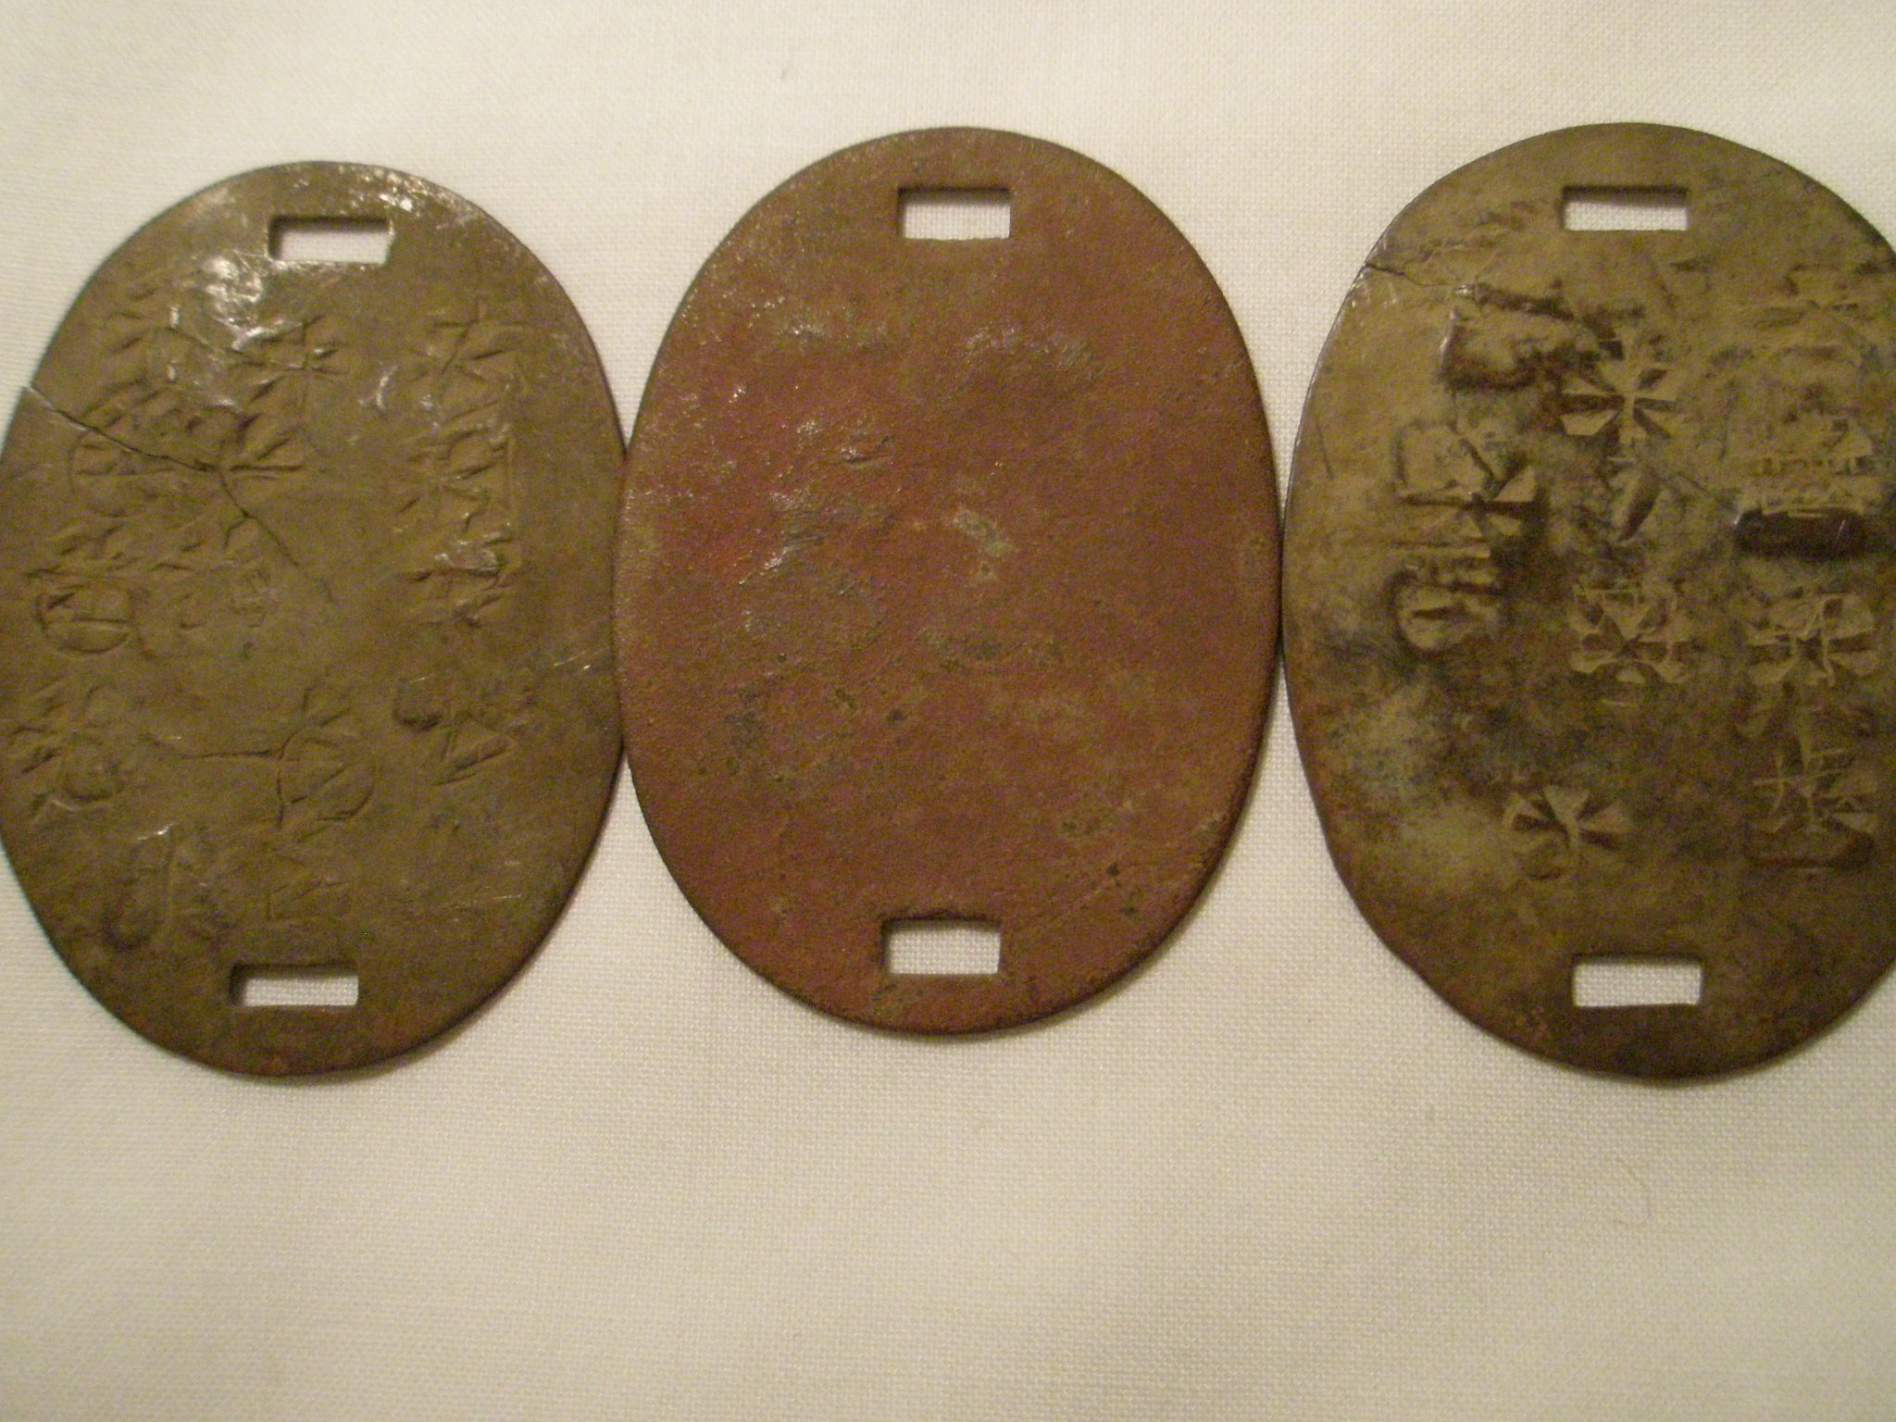 Tag Japan: Japanese Dog Tags: Original Or Fake?